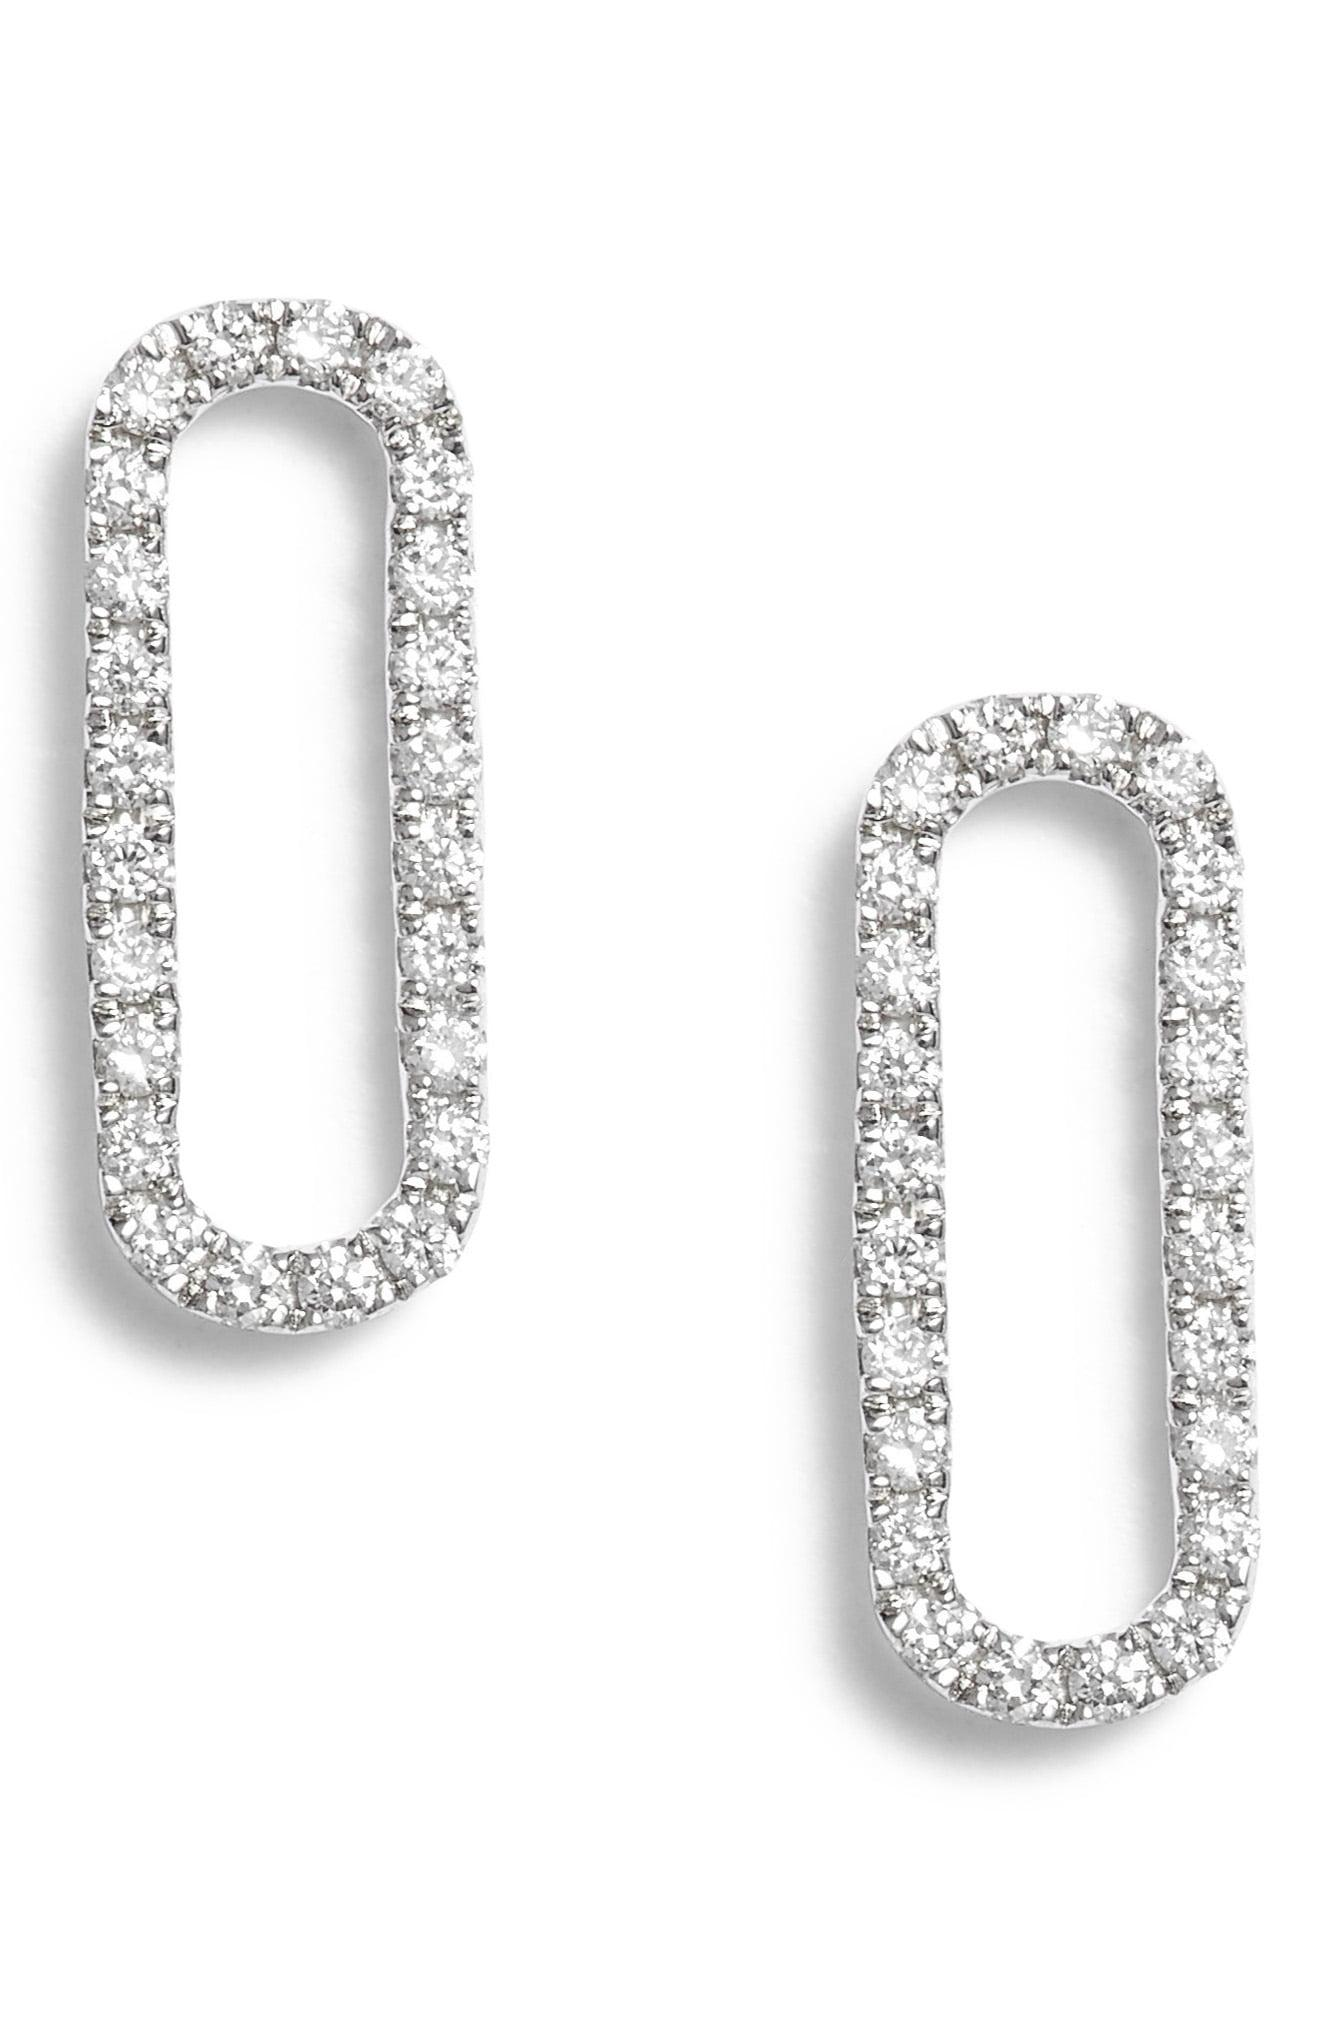 725d33d3c Bony Levy. Women's Rounded Rectangle Diamond Stud Earrings (nordstrom  Exclusive)